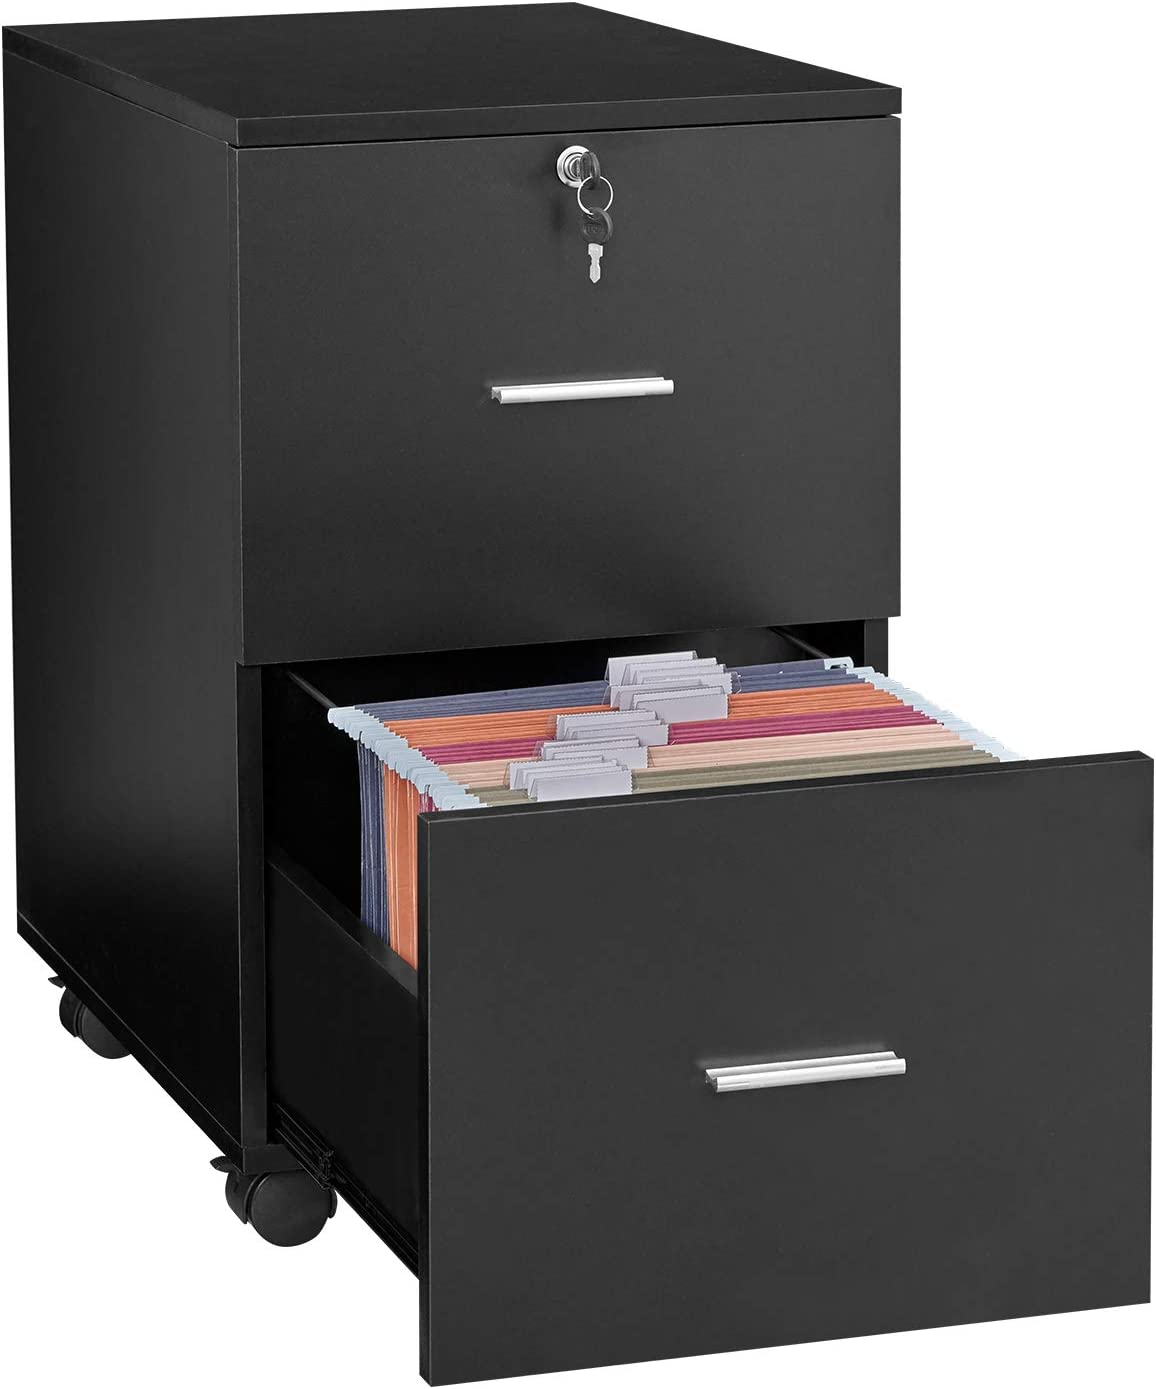 GreenForest 2 Drawer File Cabinet Wooden Vertical Filing Cabinet with Lock and Wheels for A4 or Letter Size Hanging File Folders, Black